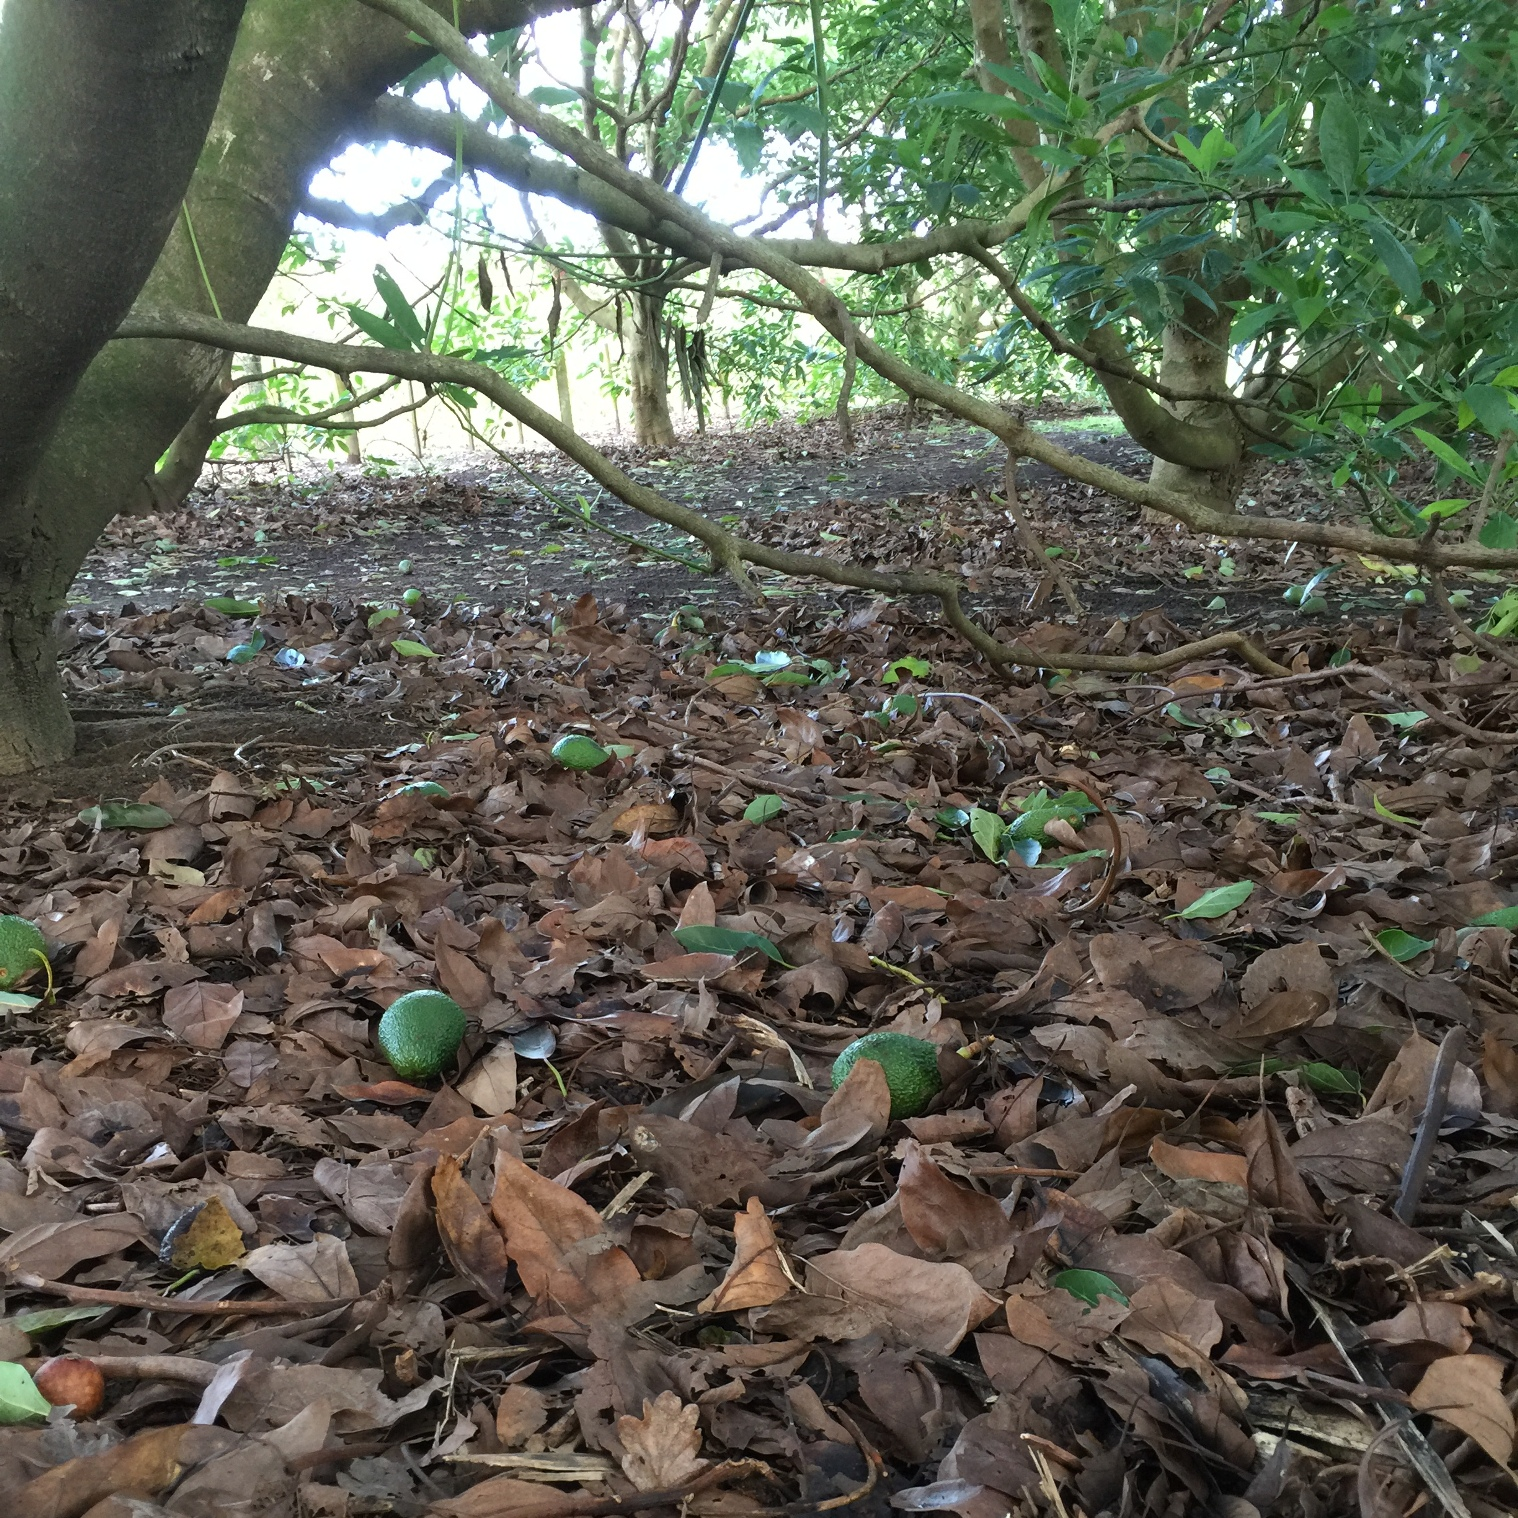 Avocados litter the orchard floor